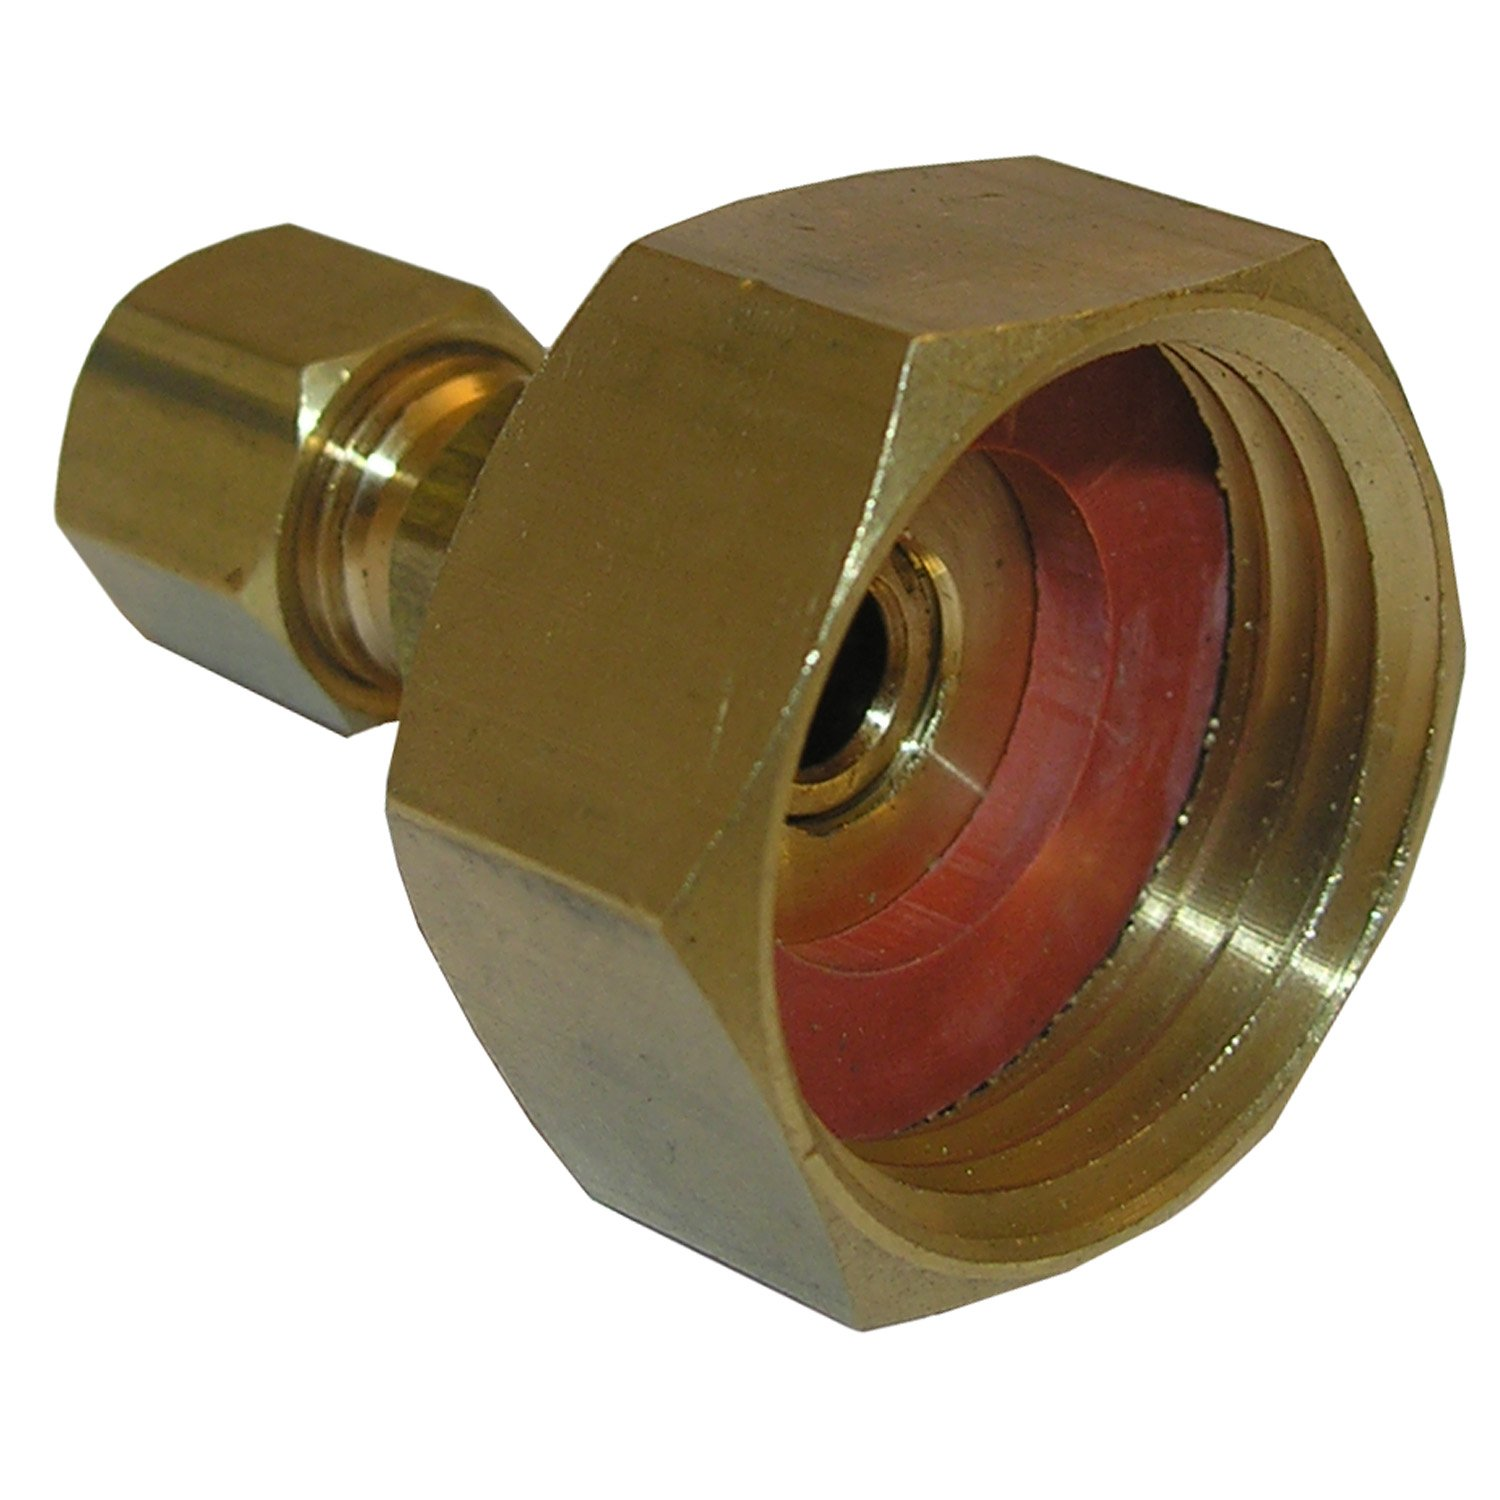 female web hose garden adapter to p